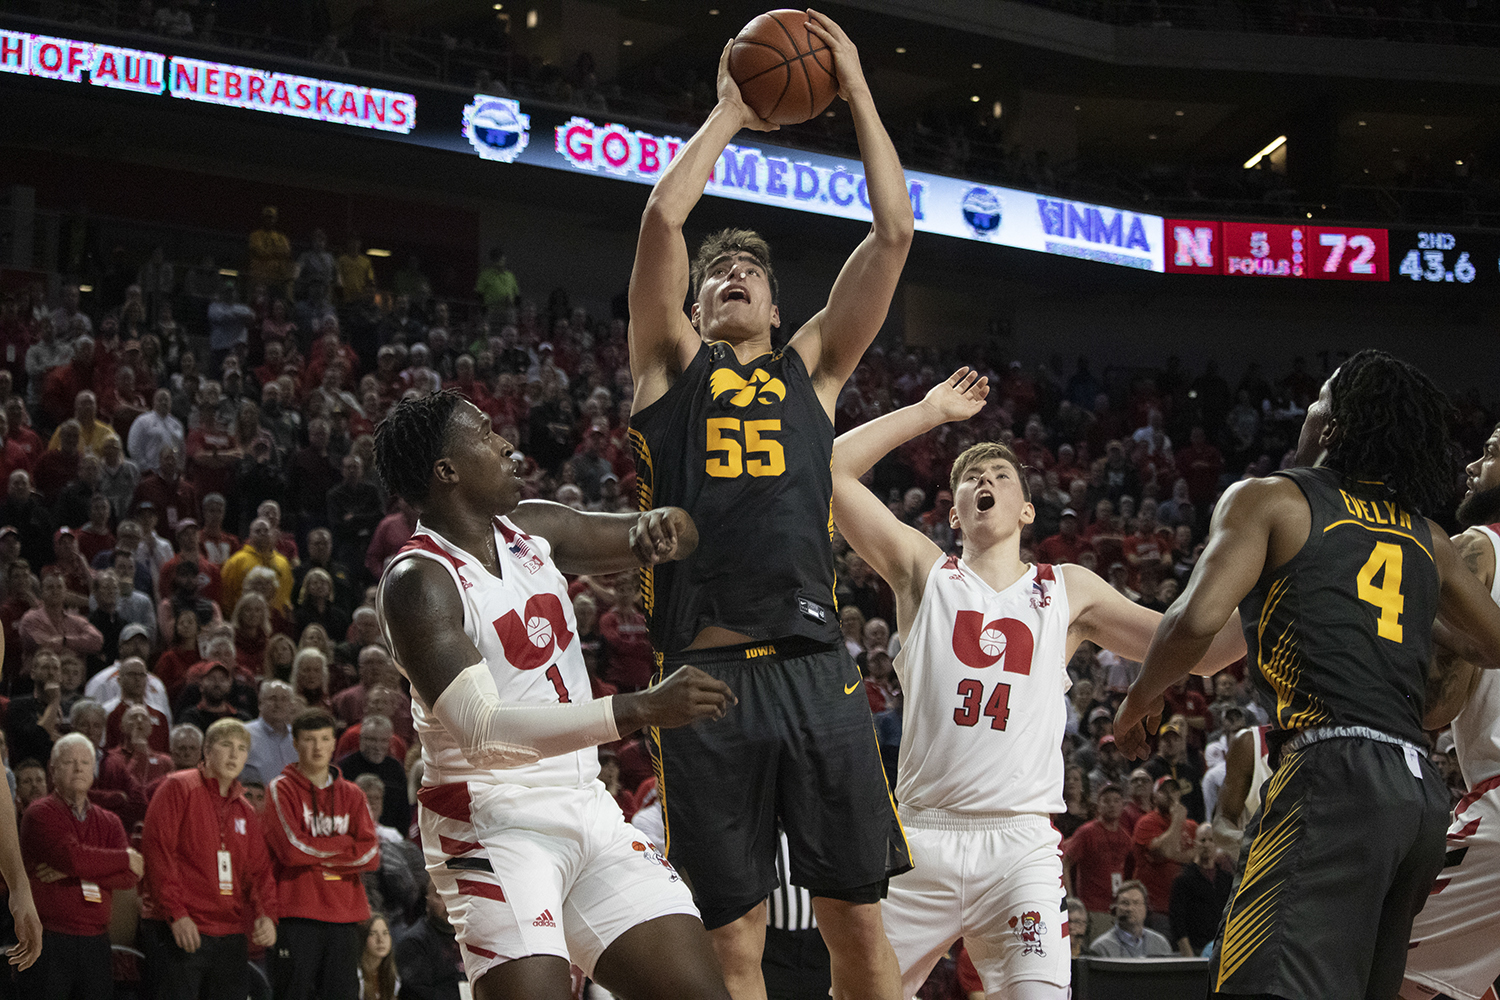 Iowa center Luke Garza rebounds a ball during a men's basketball game between Iowa and Nebraska at Pinnacle Bank Arena in Lincoln on Tuesday, January 7th. The Hawkeyes fell to the Huskers 76-70.